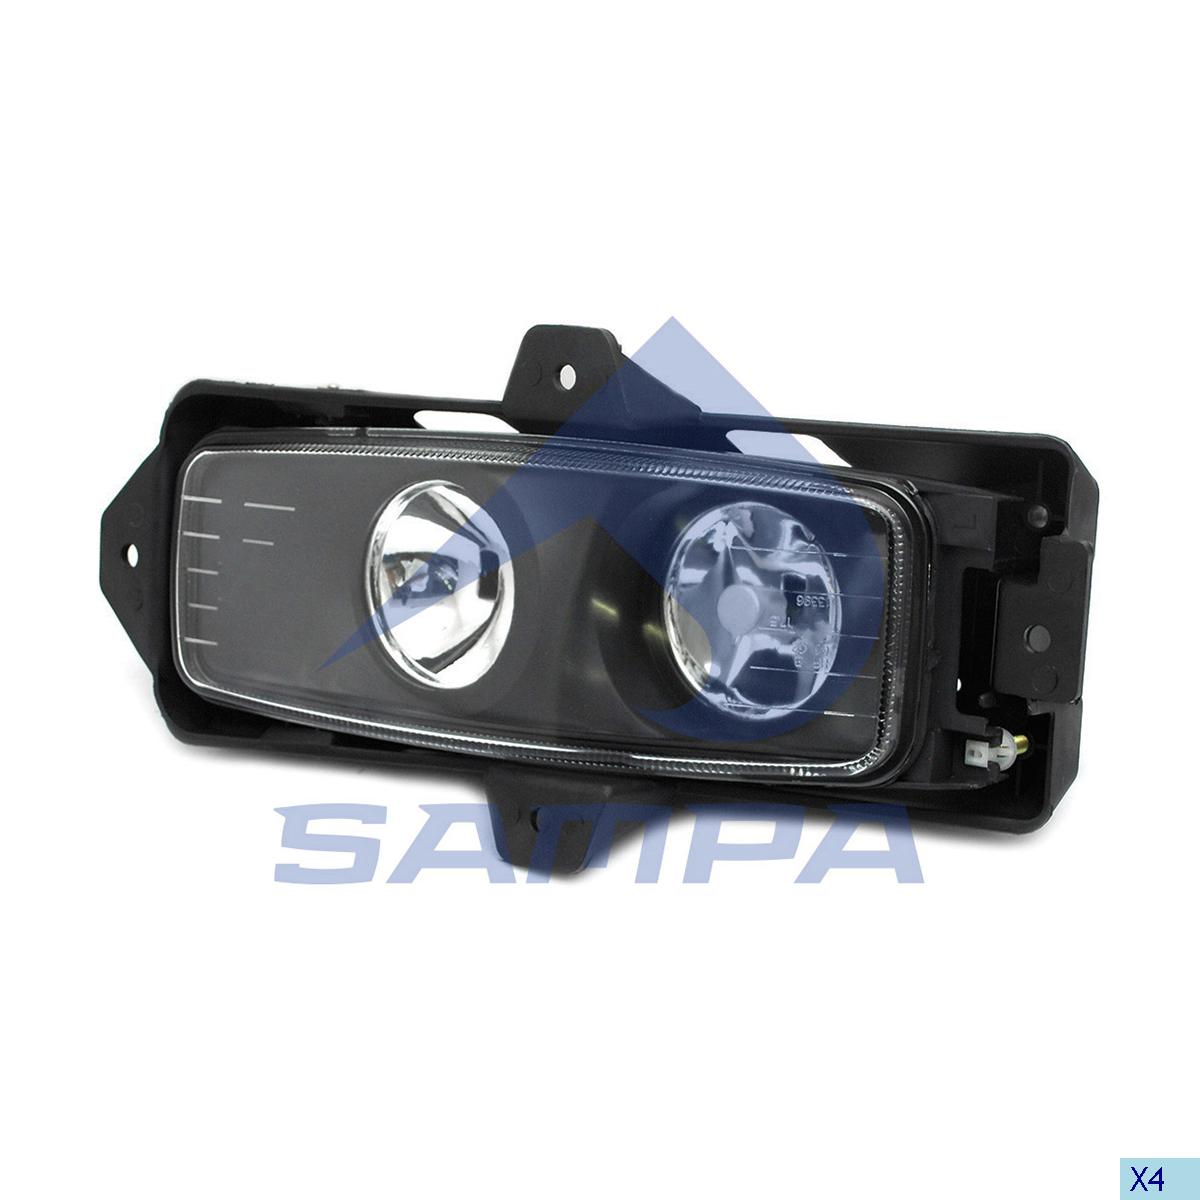 Fog Lamp, R.V.I., Electric System